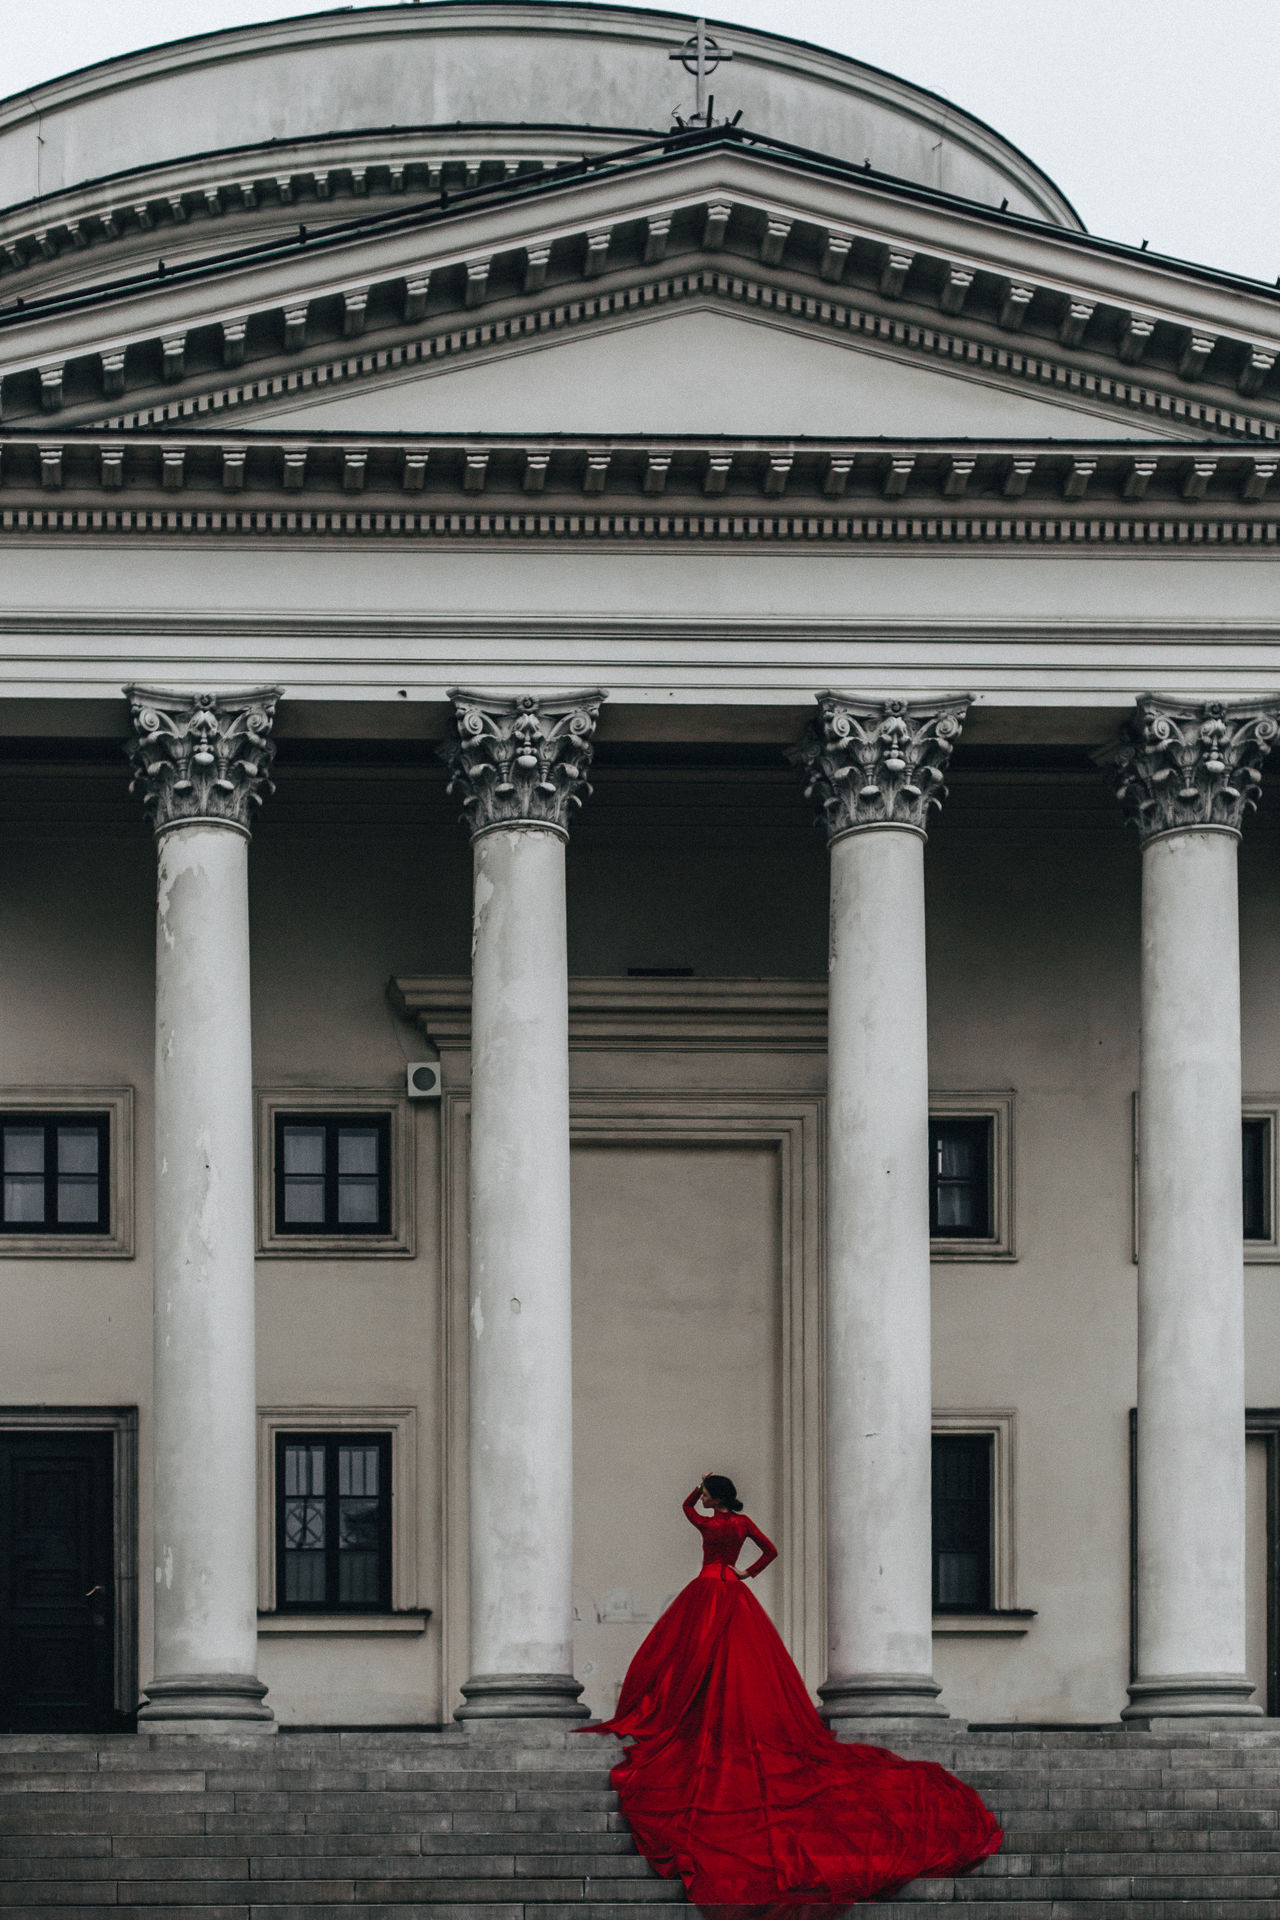 Lady in Red Architectural Column Architecture Building Exterior Built Structure City Lifestyles One Person Outdoors Real People Red Red Dress Women